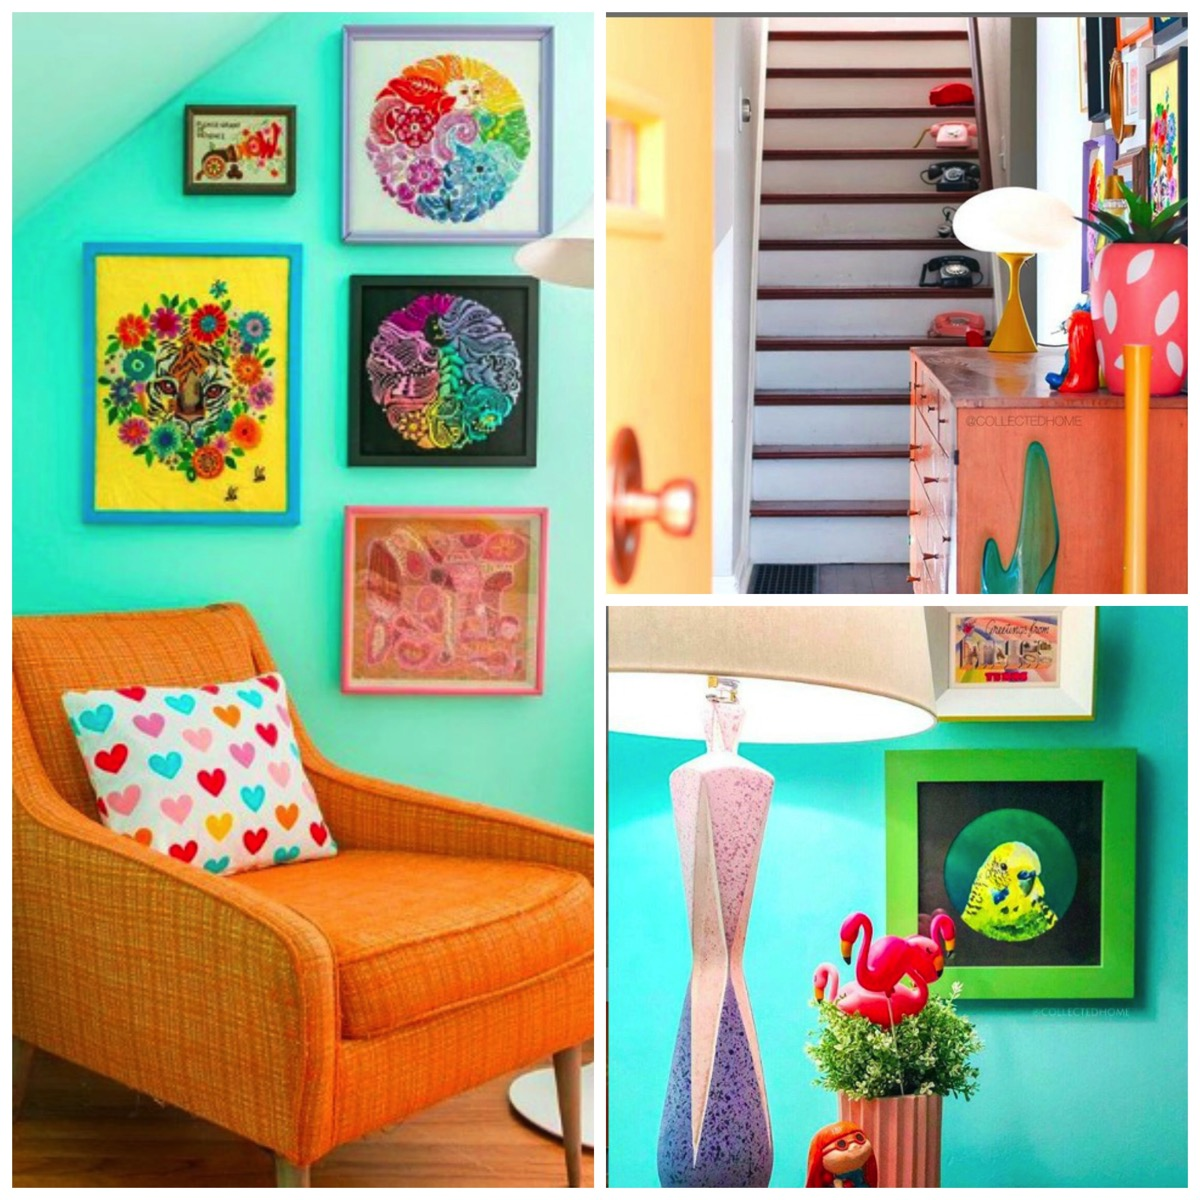 Colorful vintage inspired collected home of Nikki